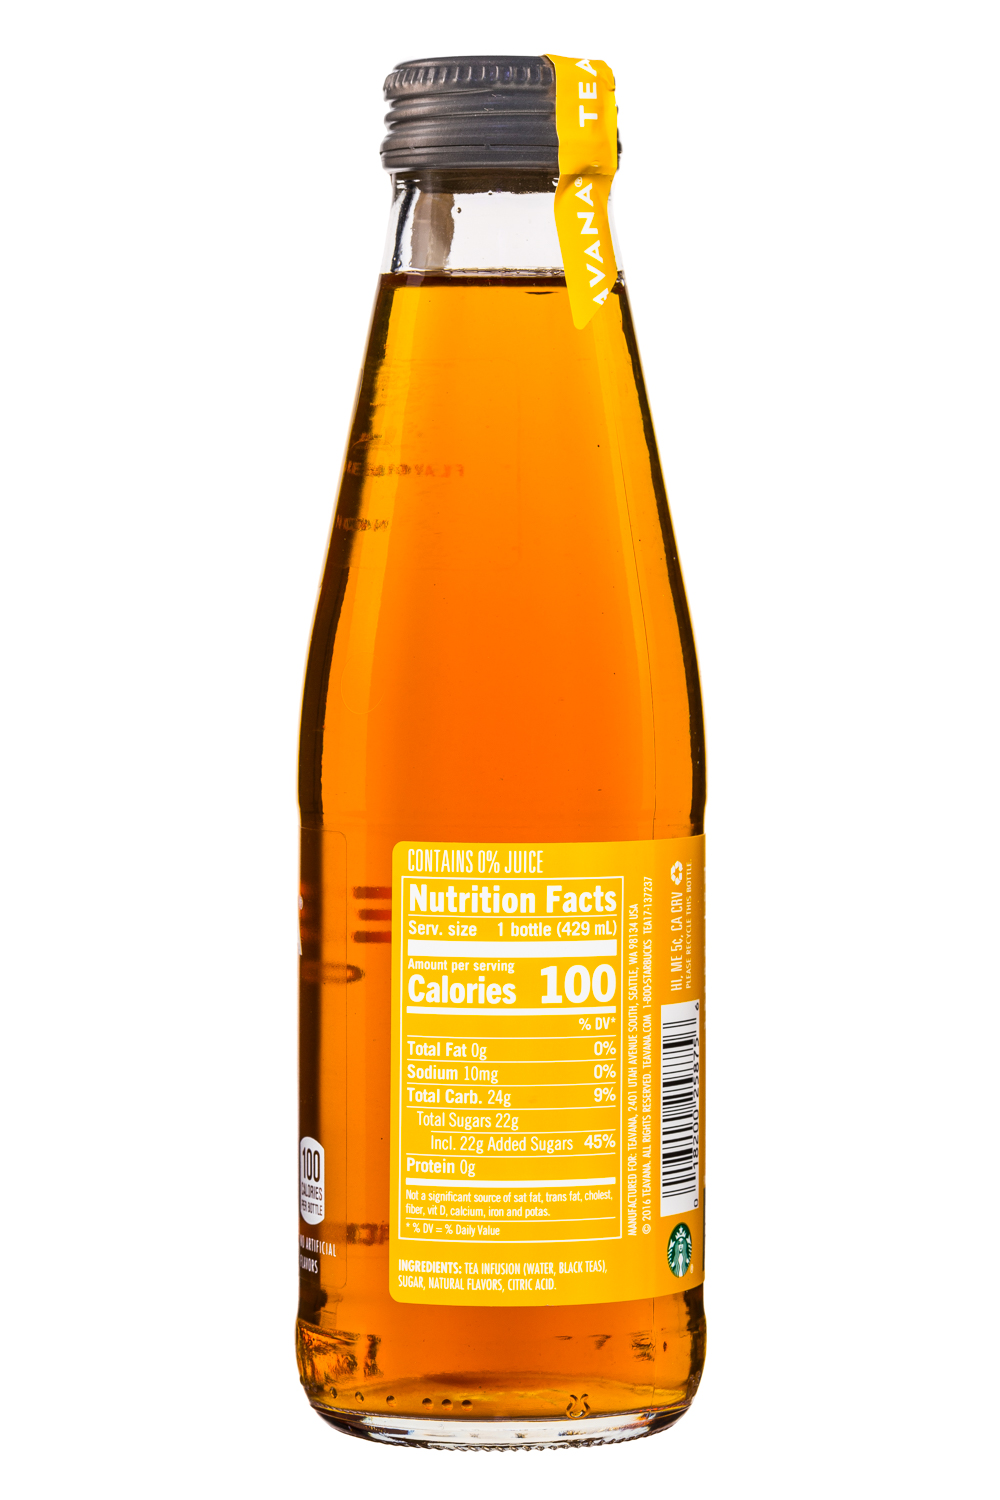 Teavana: Teavana-IcedTea-14oz-Mango-Facts